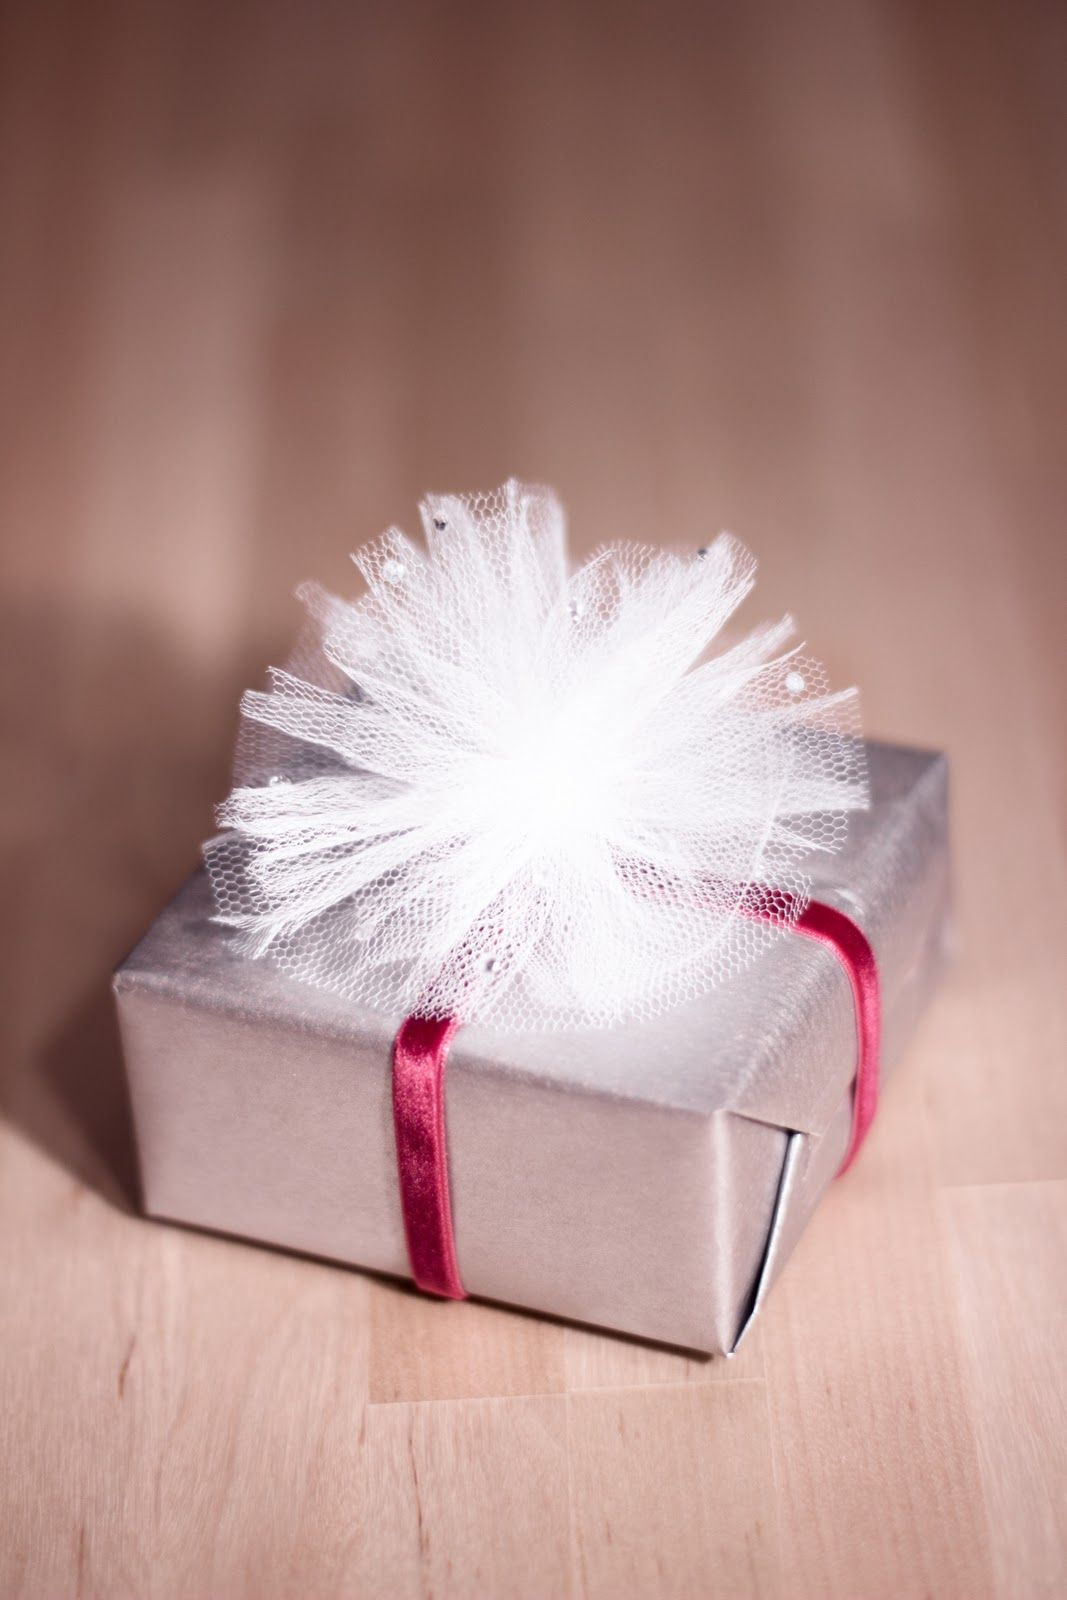 Tulle bow this would be an awesome way to wrap presents im not